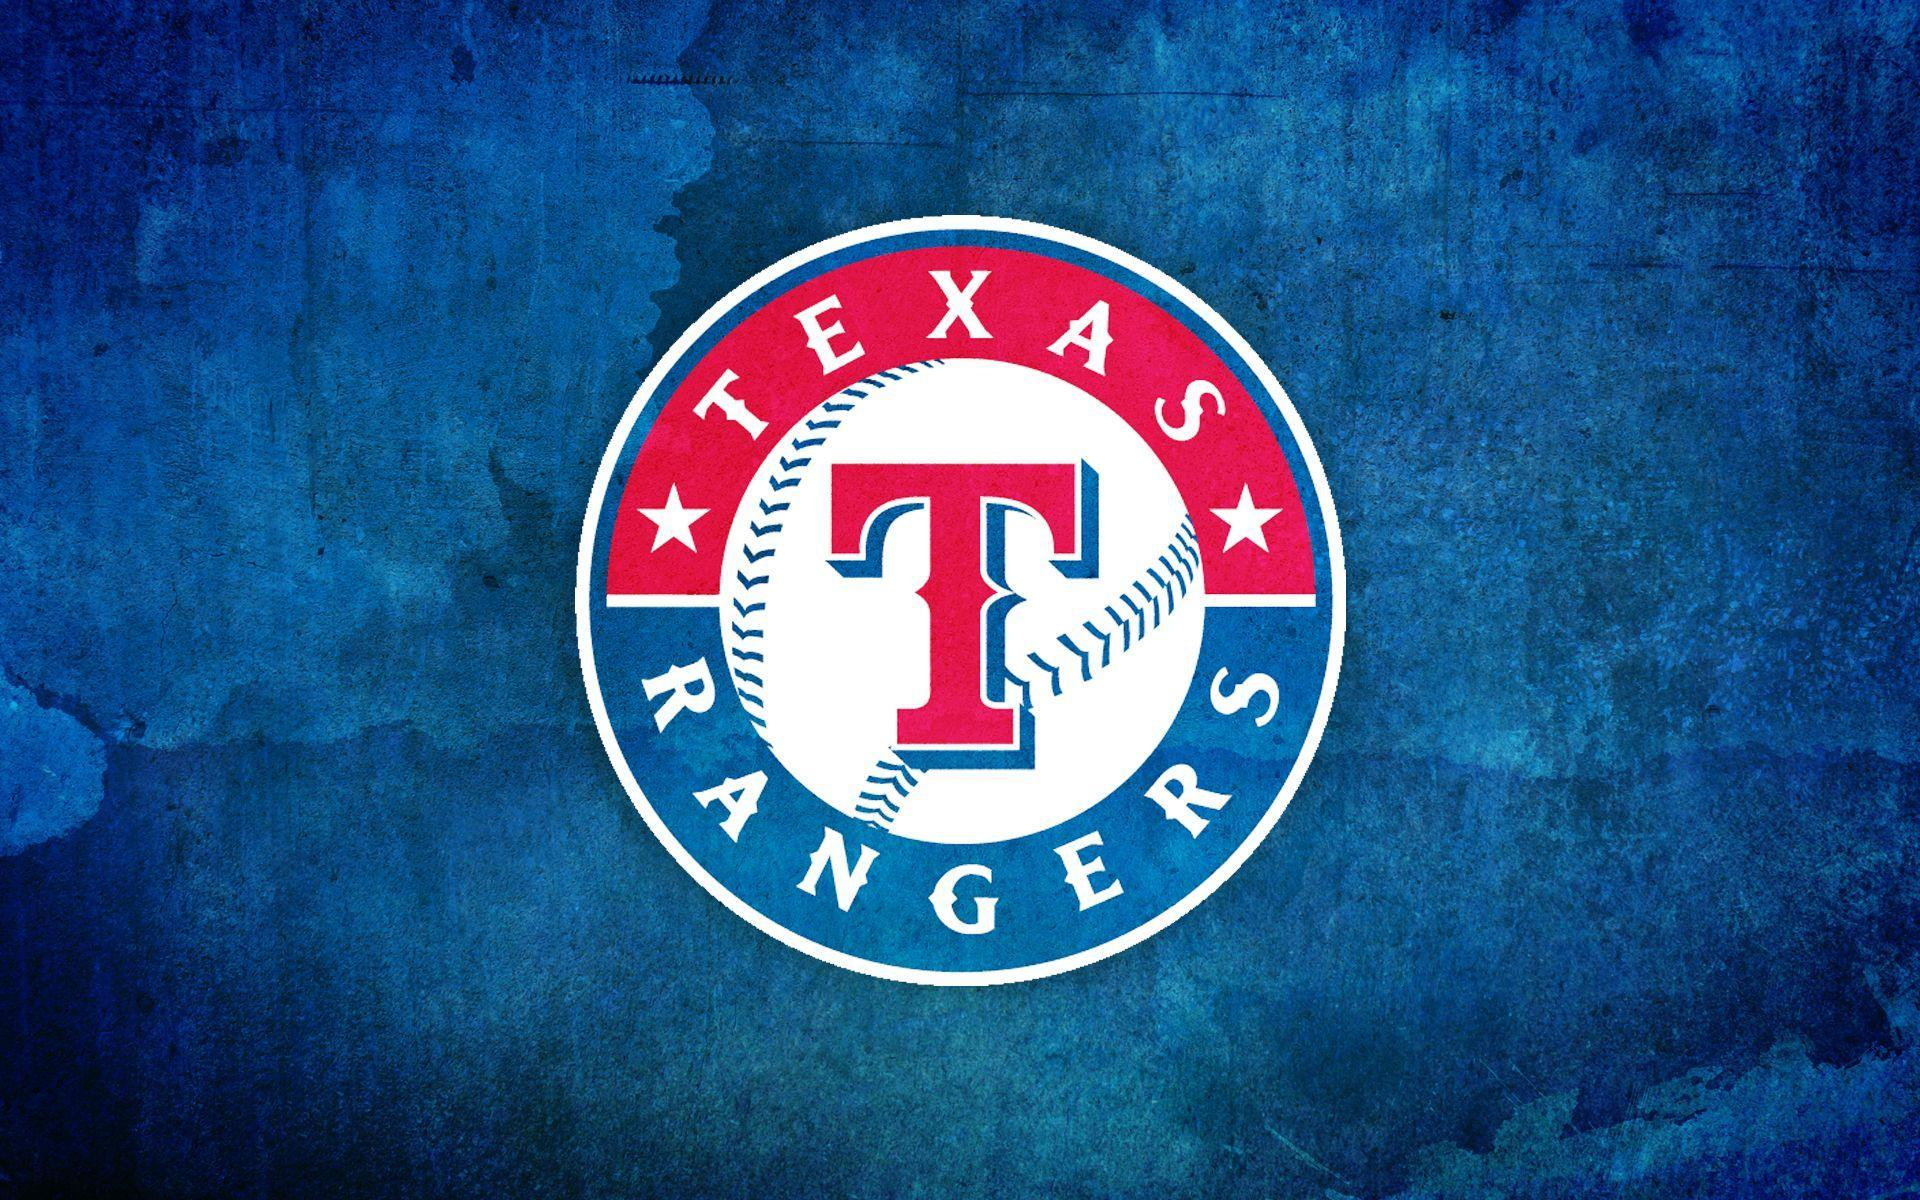 texas rangers wallpapers - wallpaper cave